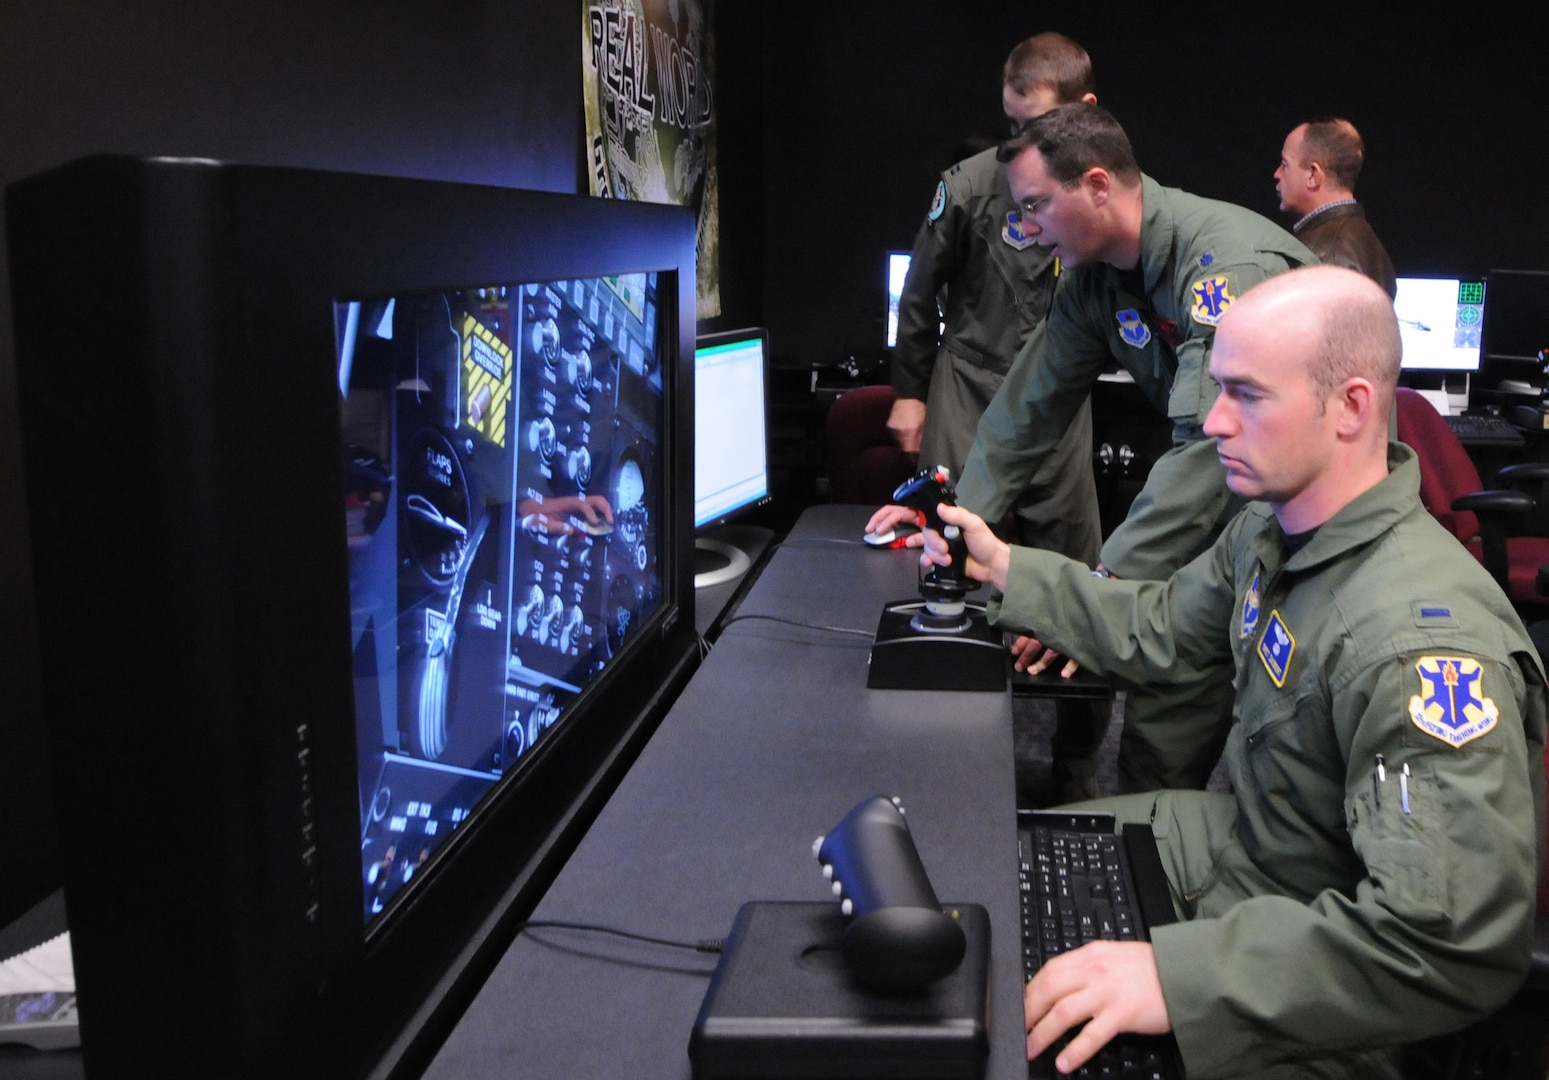 First Lt. Bret Saubert (right), 563rd Flying Training Squadron UAS student pilot, learns to integrate air power on a cyber-based simulation in the training lab at the UAS Fundamentals Course. (photo by Rich McFadden)